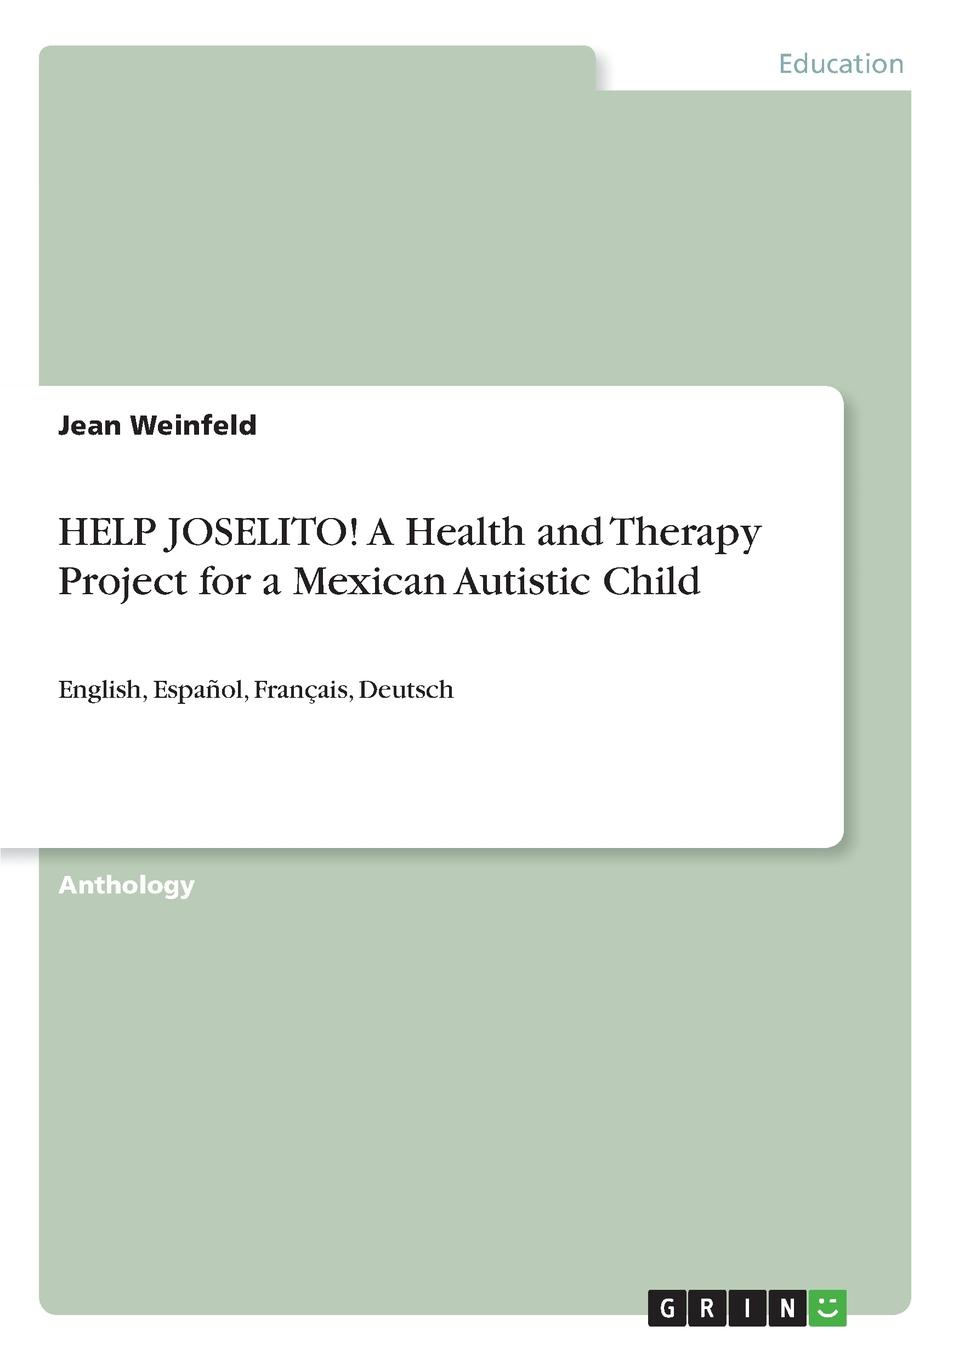 Jean Weinfeld HELP JOSELITO. A Health and Therapy Project for a Mexican Autistic Child what constitutes an appropriate education for autistic children